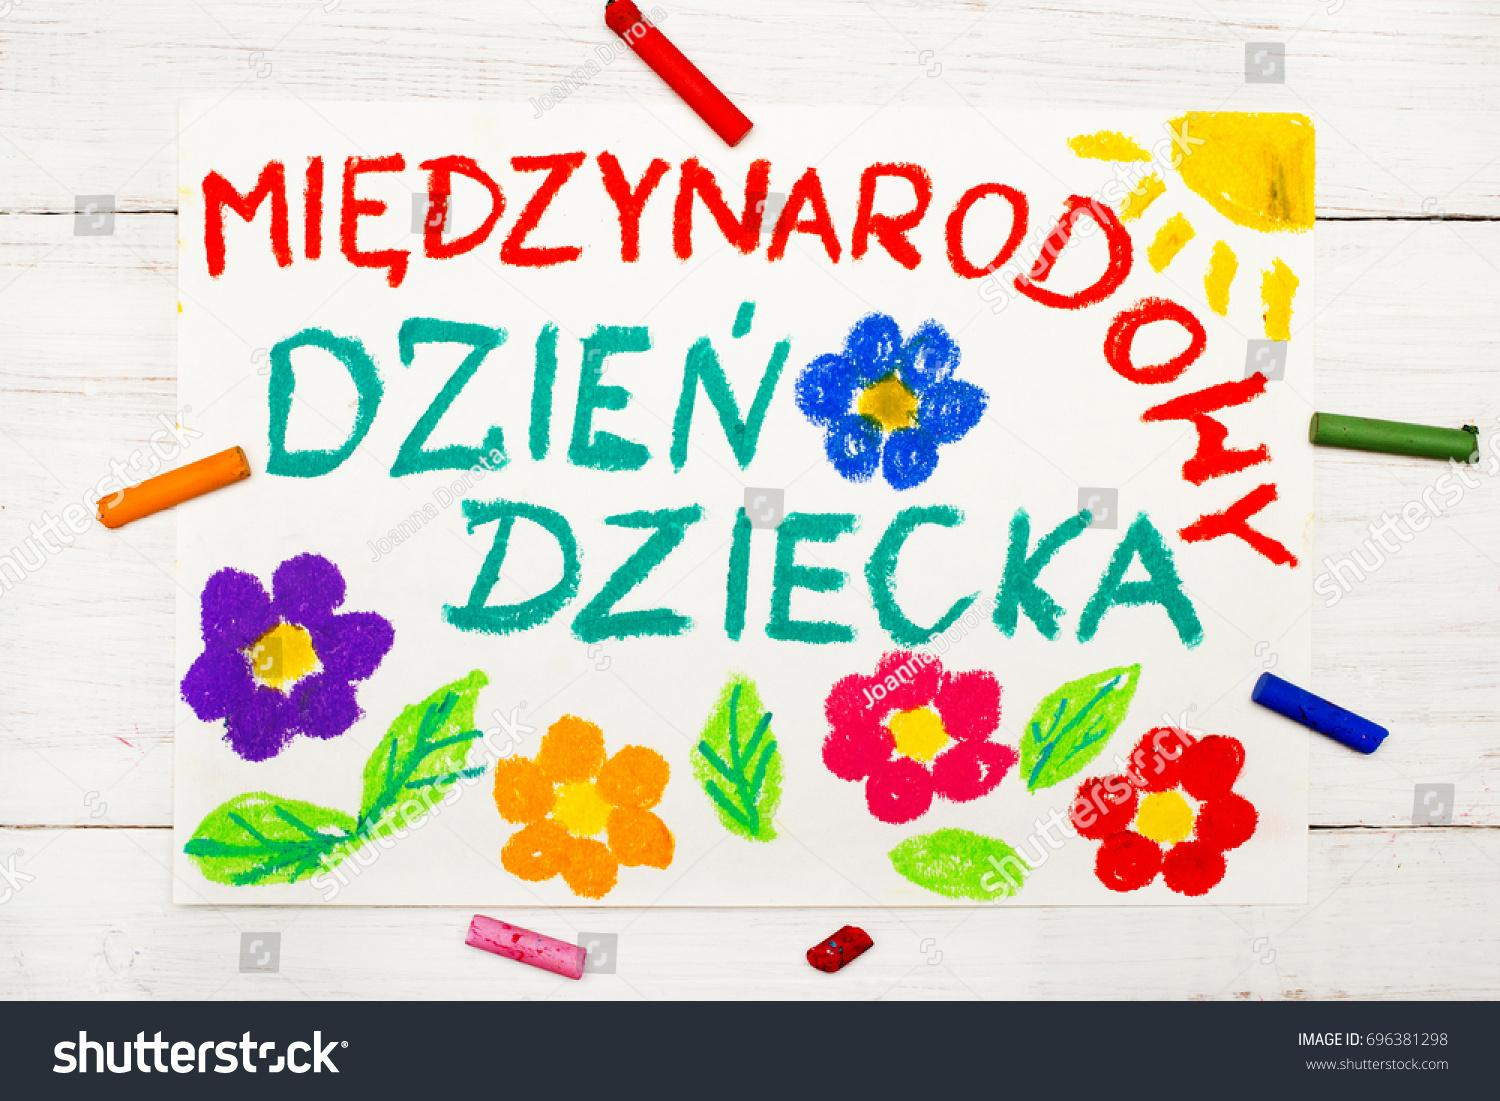 Colorful drawing: Children's day card with Polish words Children's day